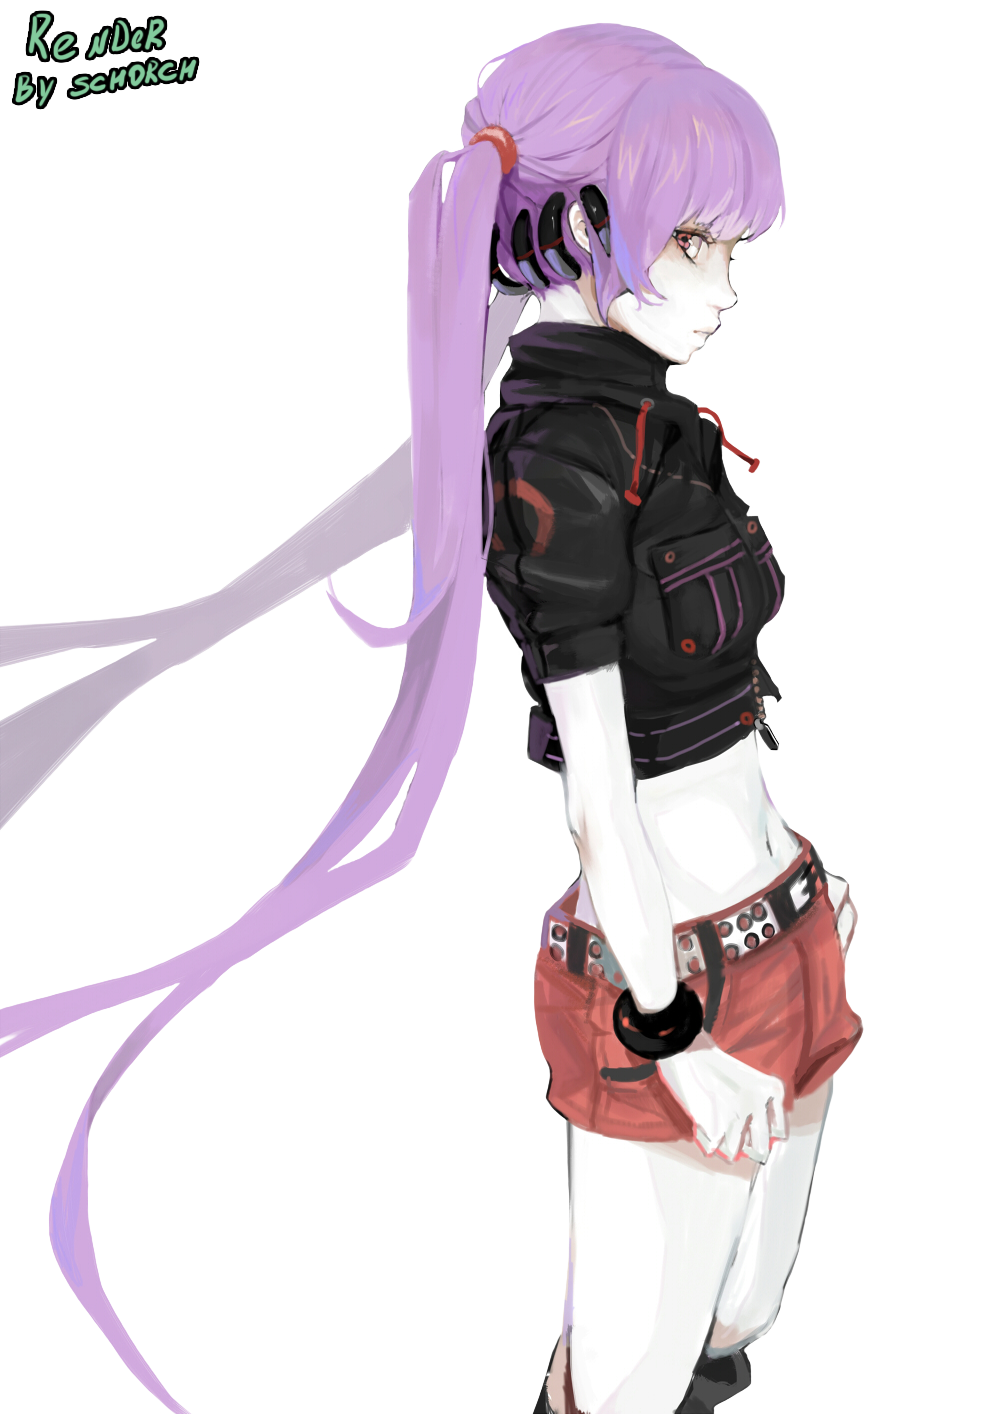 Anime girl purple hair render by schorch2812 d821xxe png